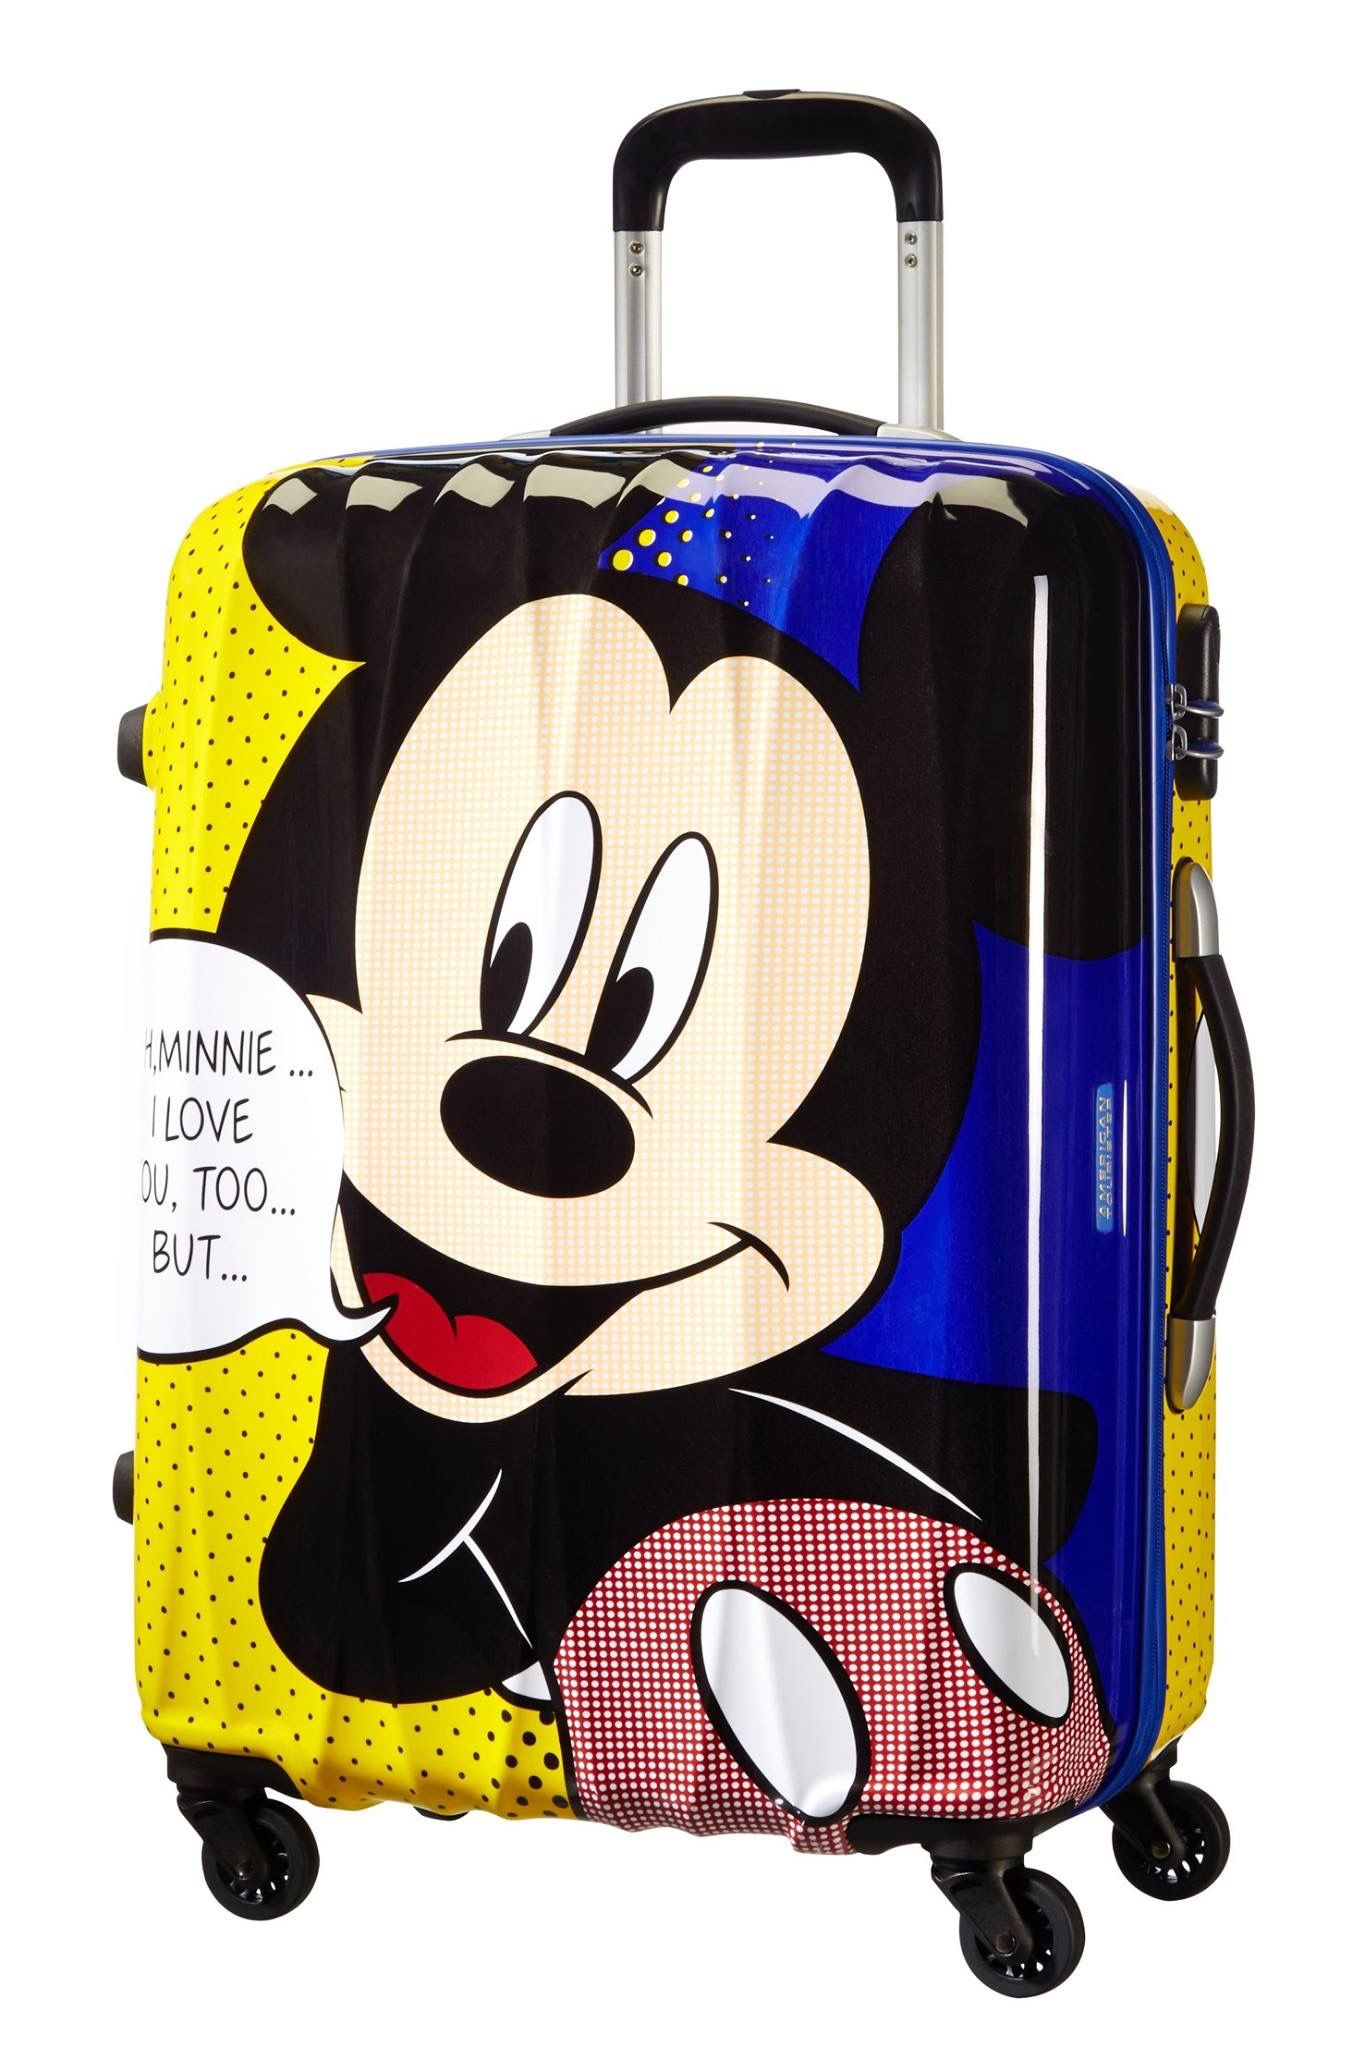 Mickey Mouse Luggage Disney Purse Trips Travel